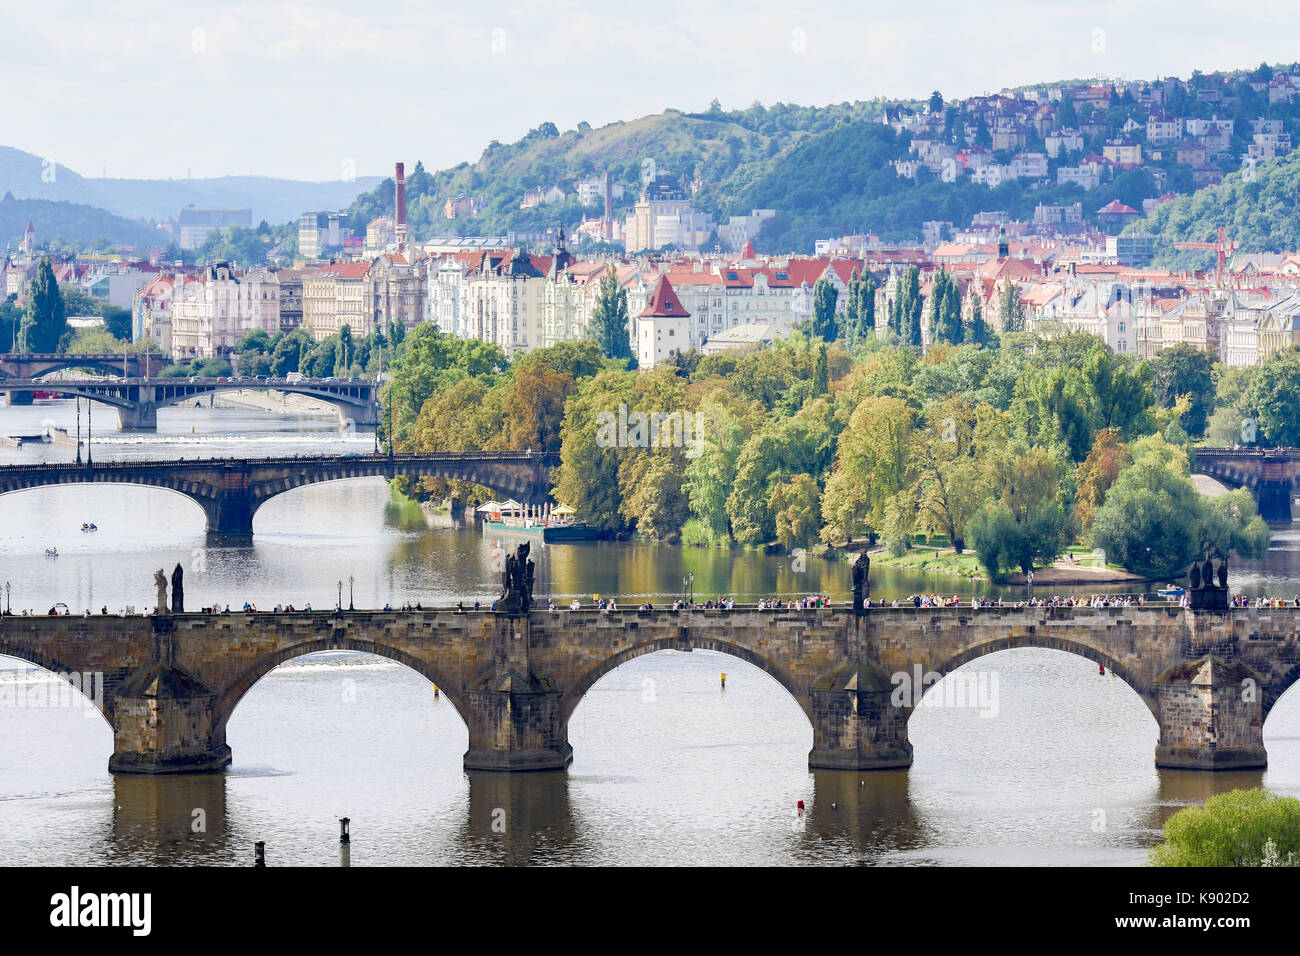 Prague, Czech Republic - August 21, 2017: View of the city's bridges from the top of Letna park Stock Photo